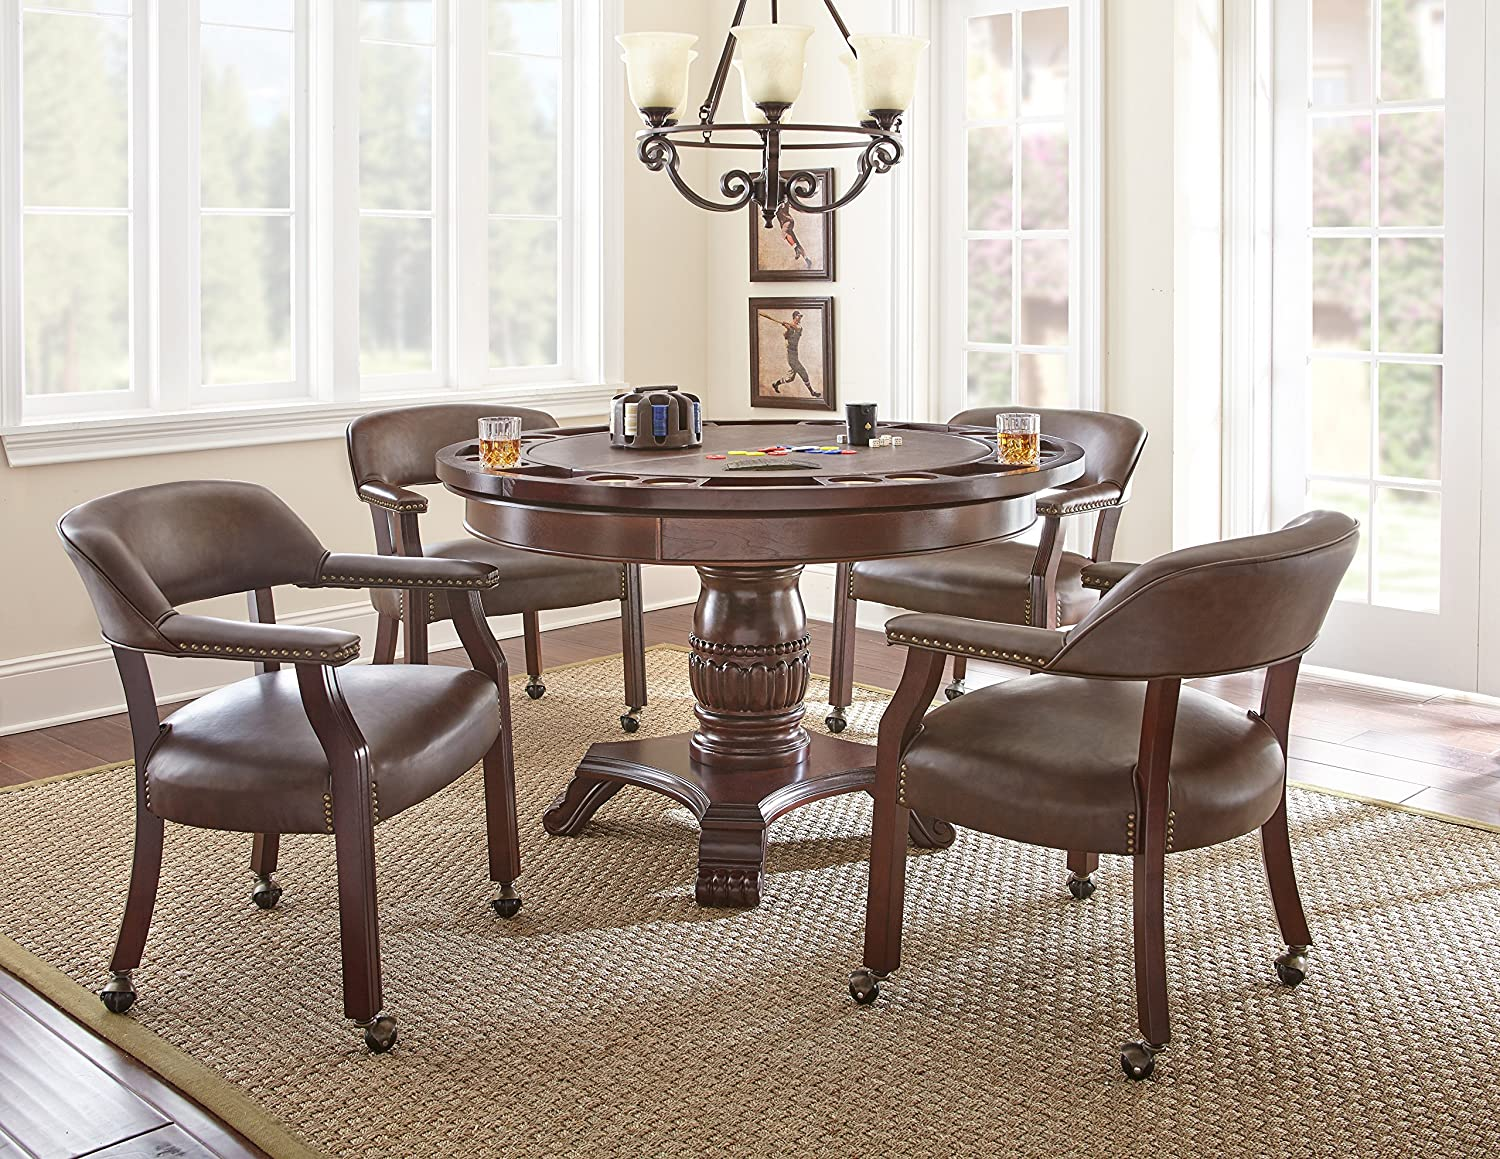 019c4bd803e Amazon.com - Steve Silver Company Tournament Dining and Game Table ...